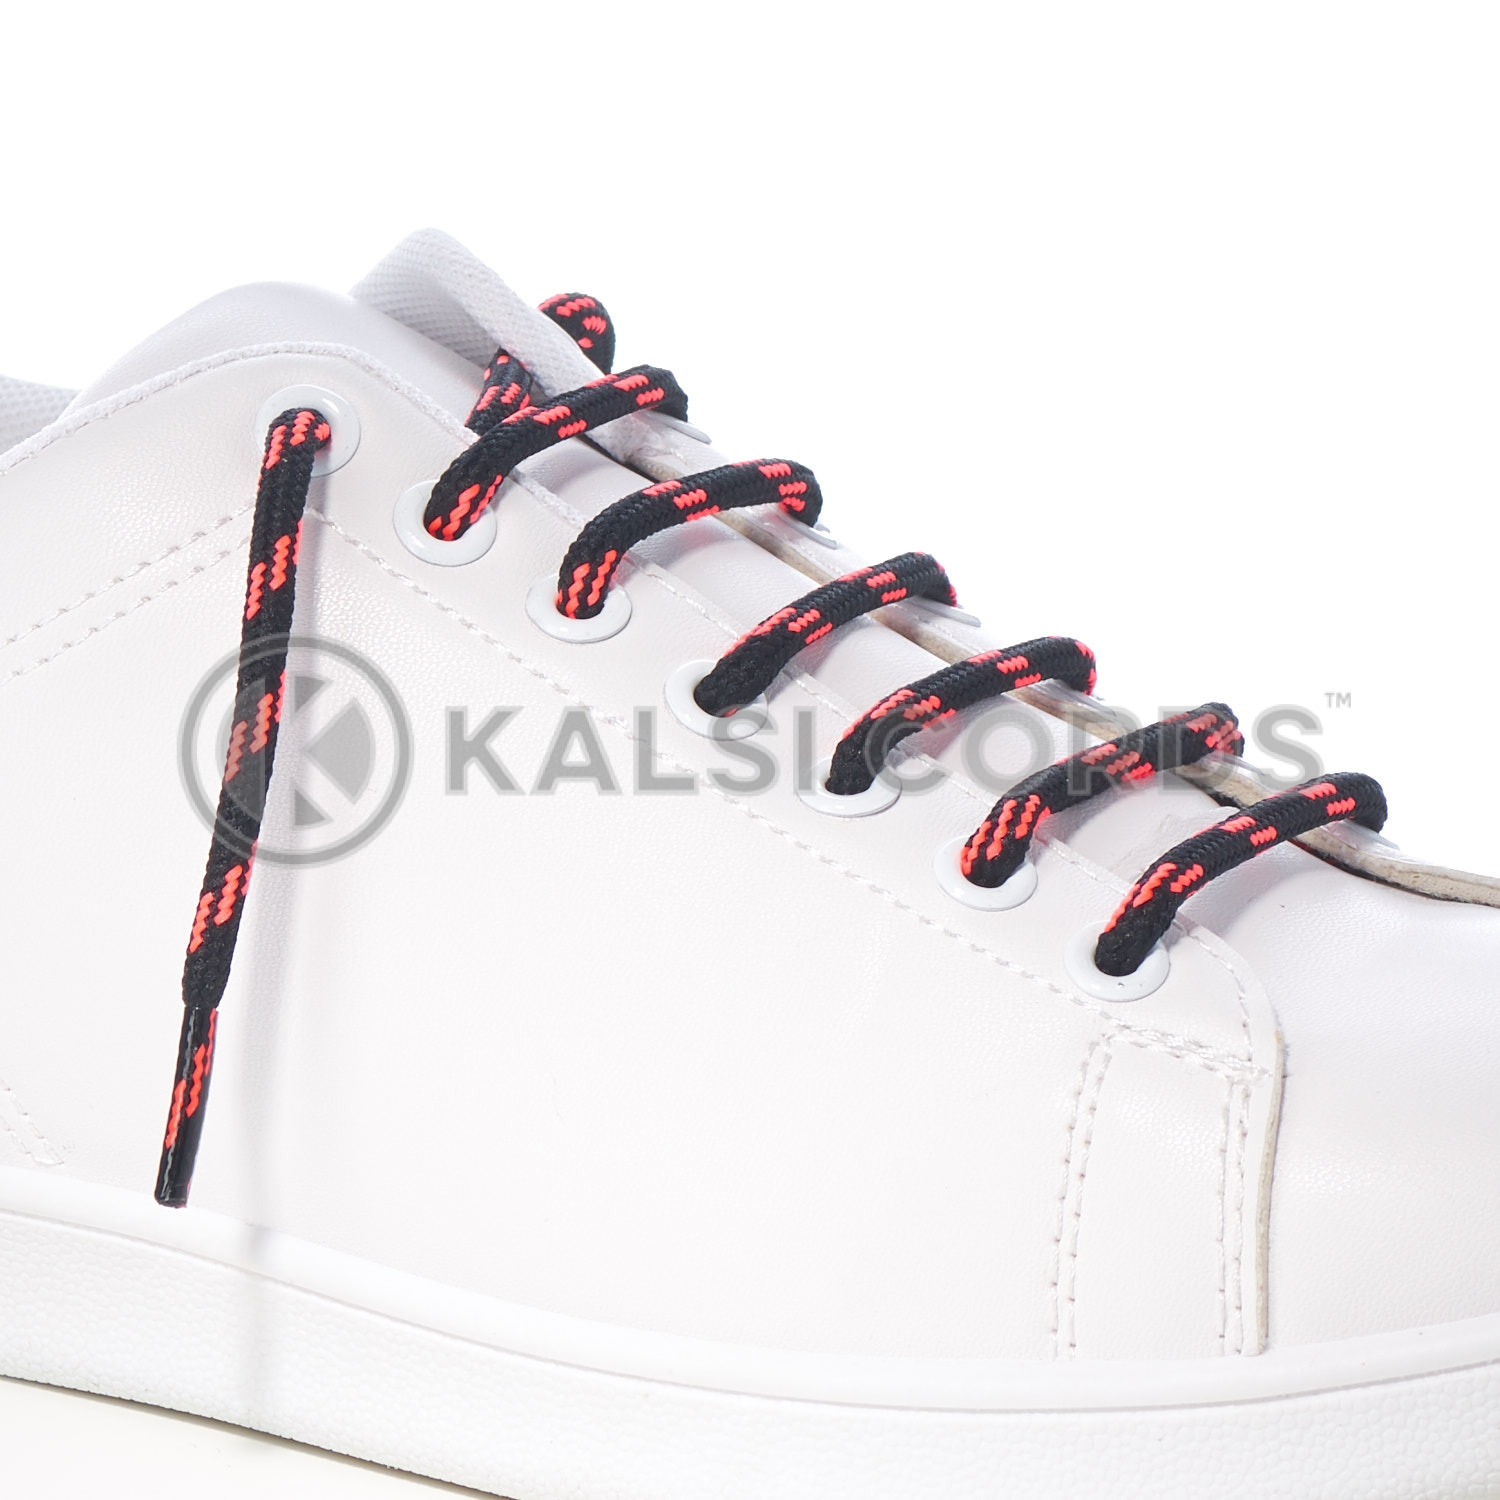 T621 5mm Round Cord Shoe Lace Black Fluorescent Pink 4 Fleck Kids Trainers Adults Hiking Walking Boots Kalsi Cords